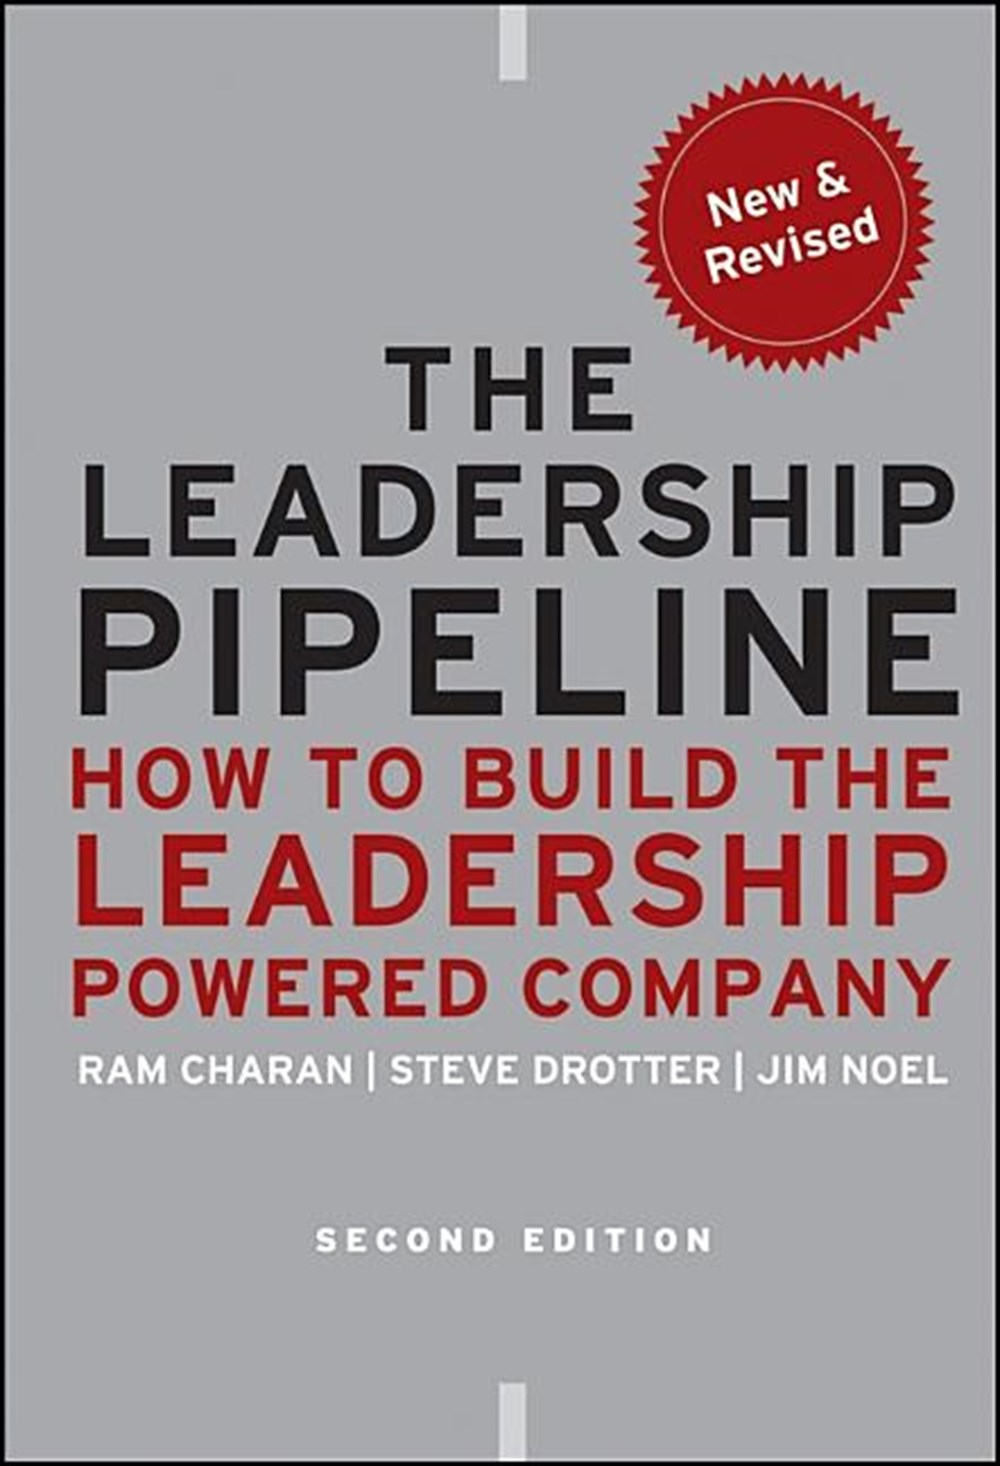 Leadership Pipeline How to Build the Leadership Powered Company (Revised)